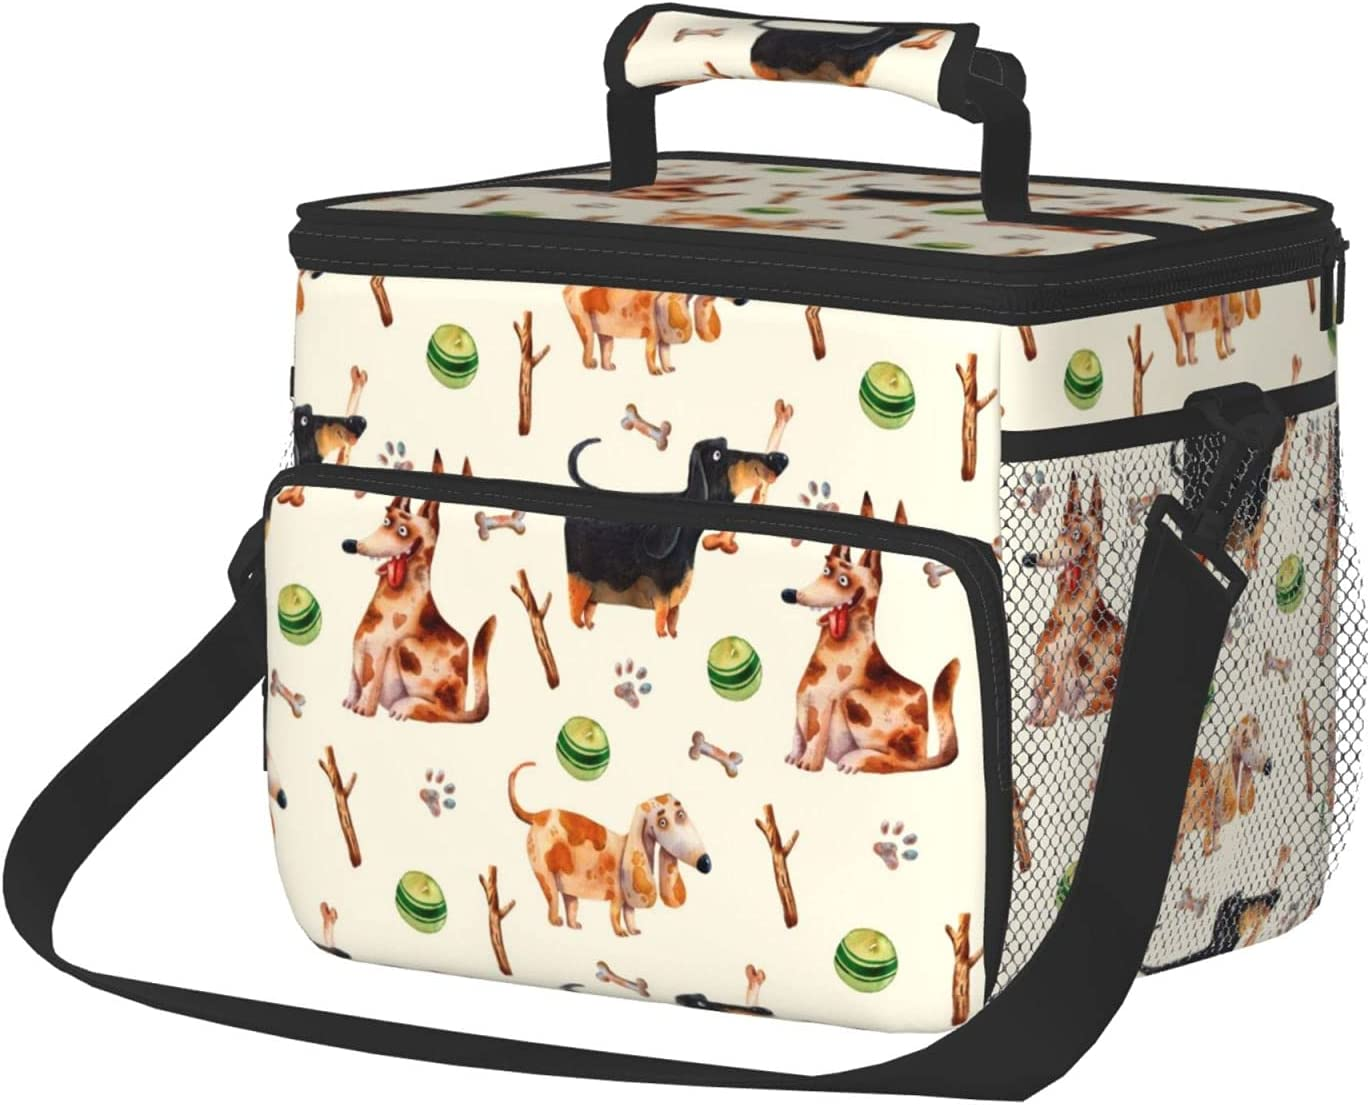 Insulated Lunch Bag For Women Reusable Men Discount is also underway Office 55% OFF Box